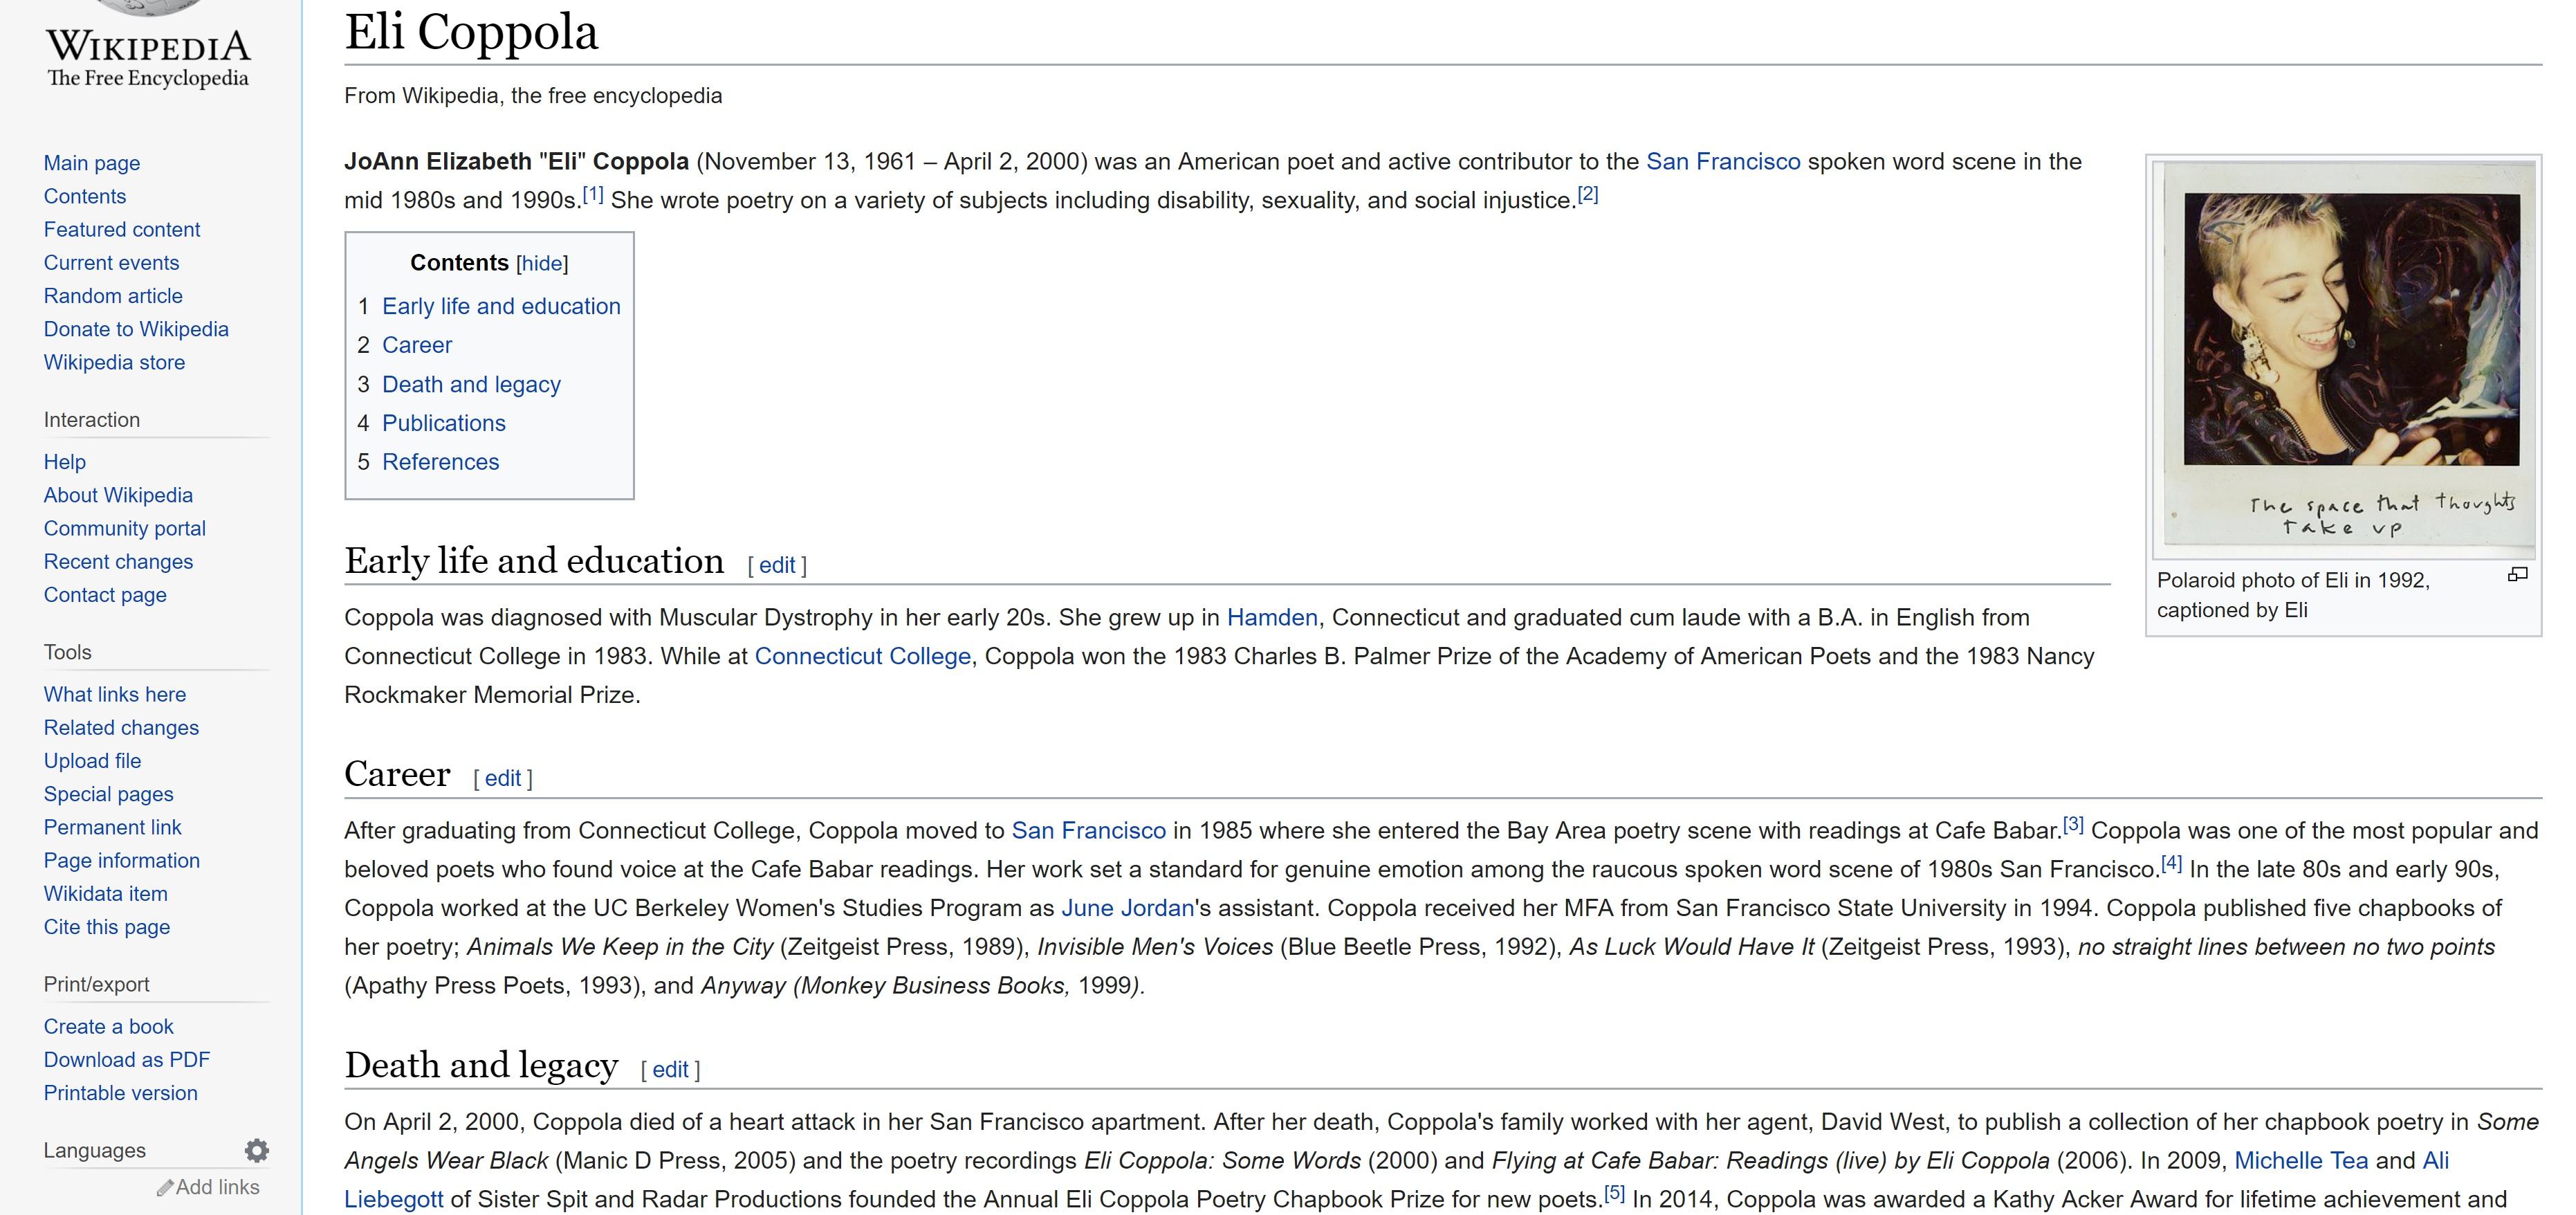 Screenshot of a Wikipedia article featuring poet Eli Coppola.